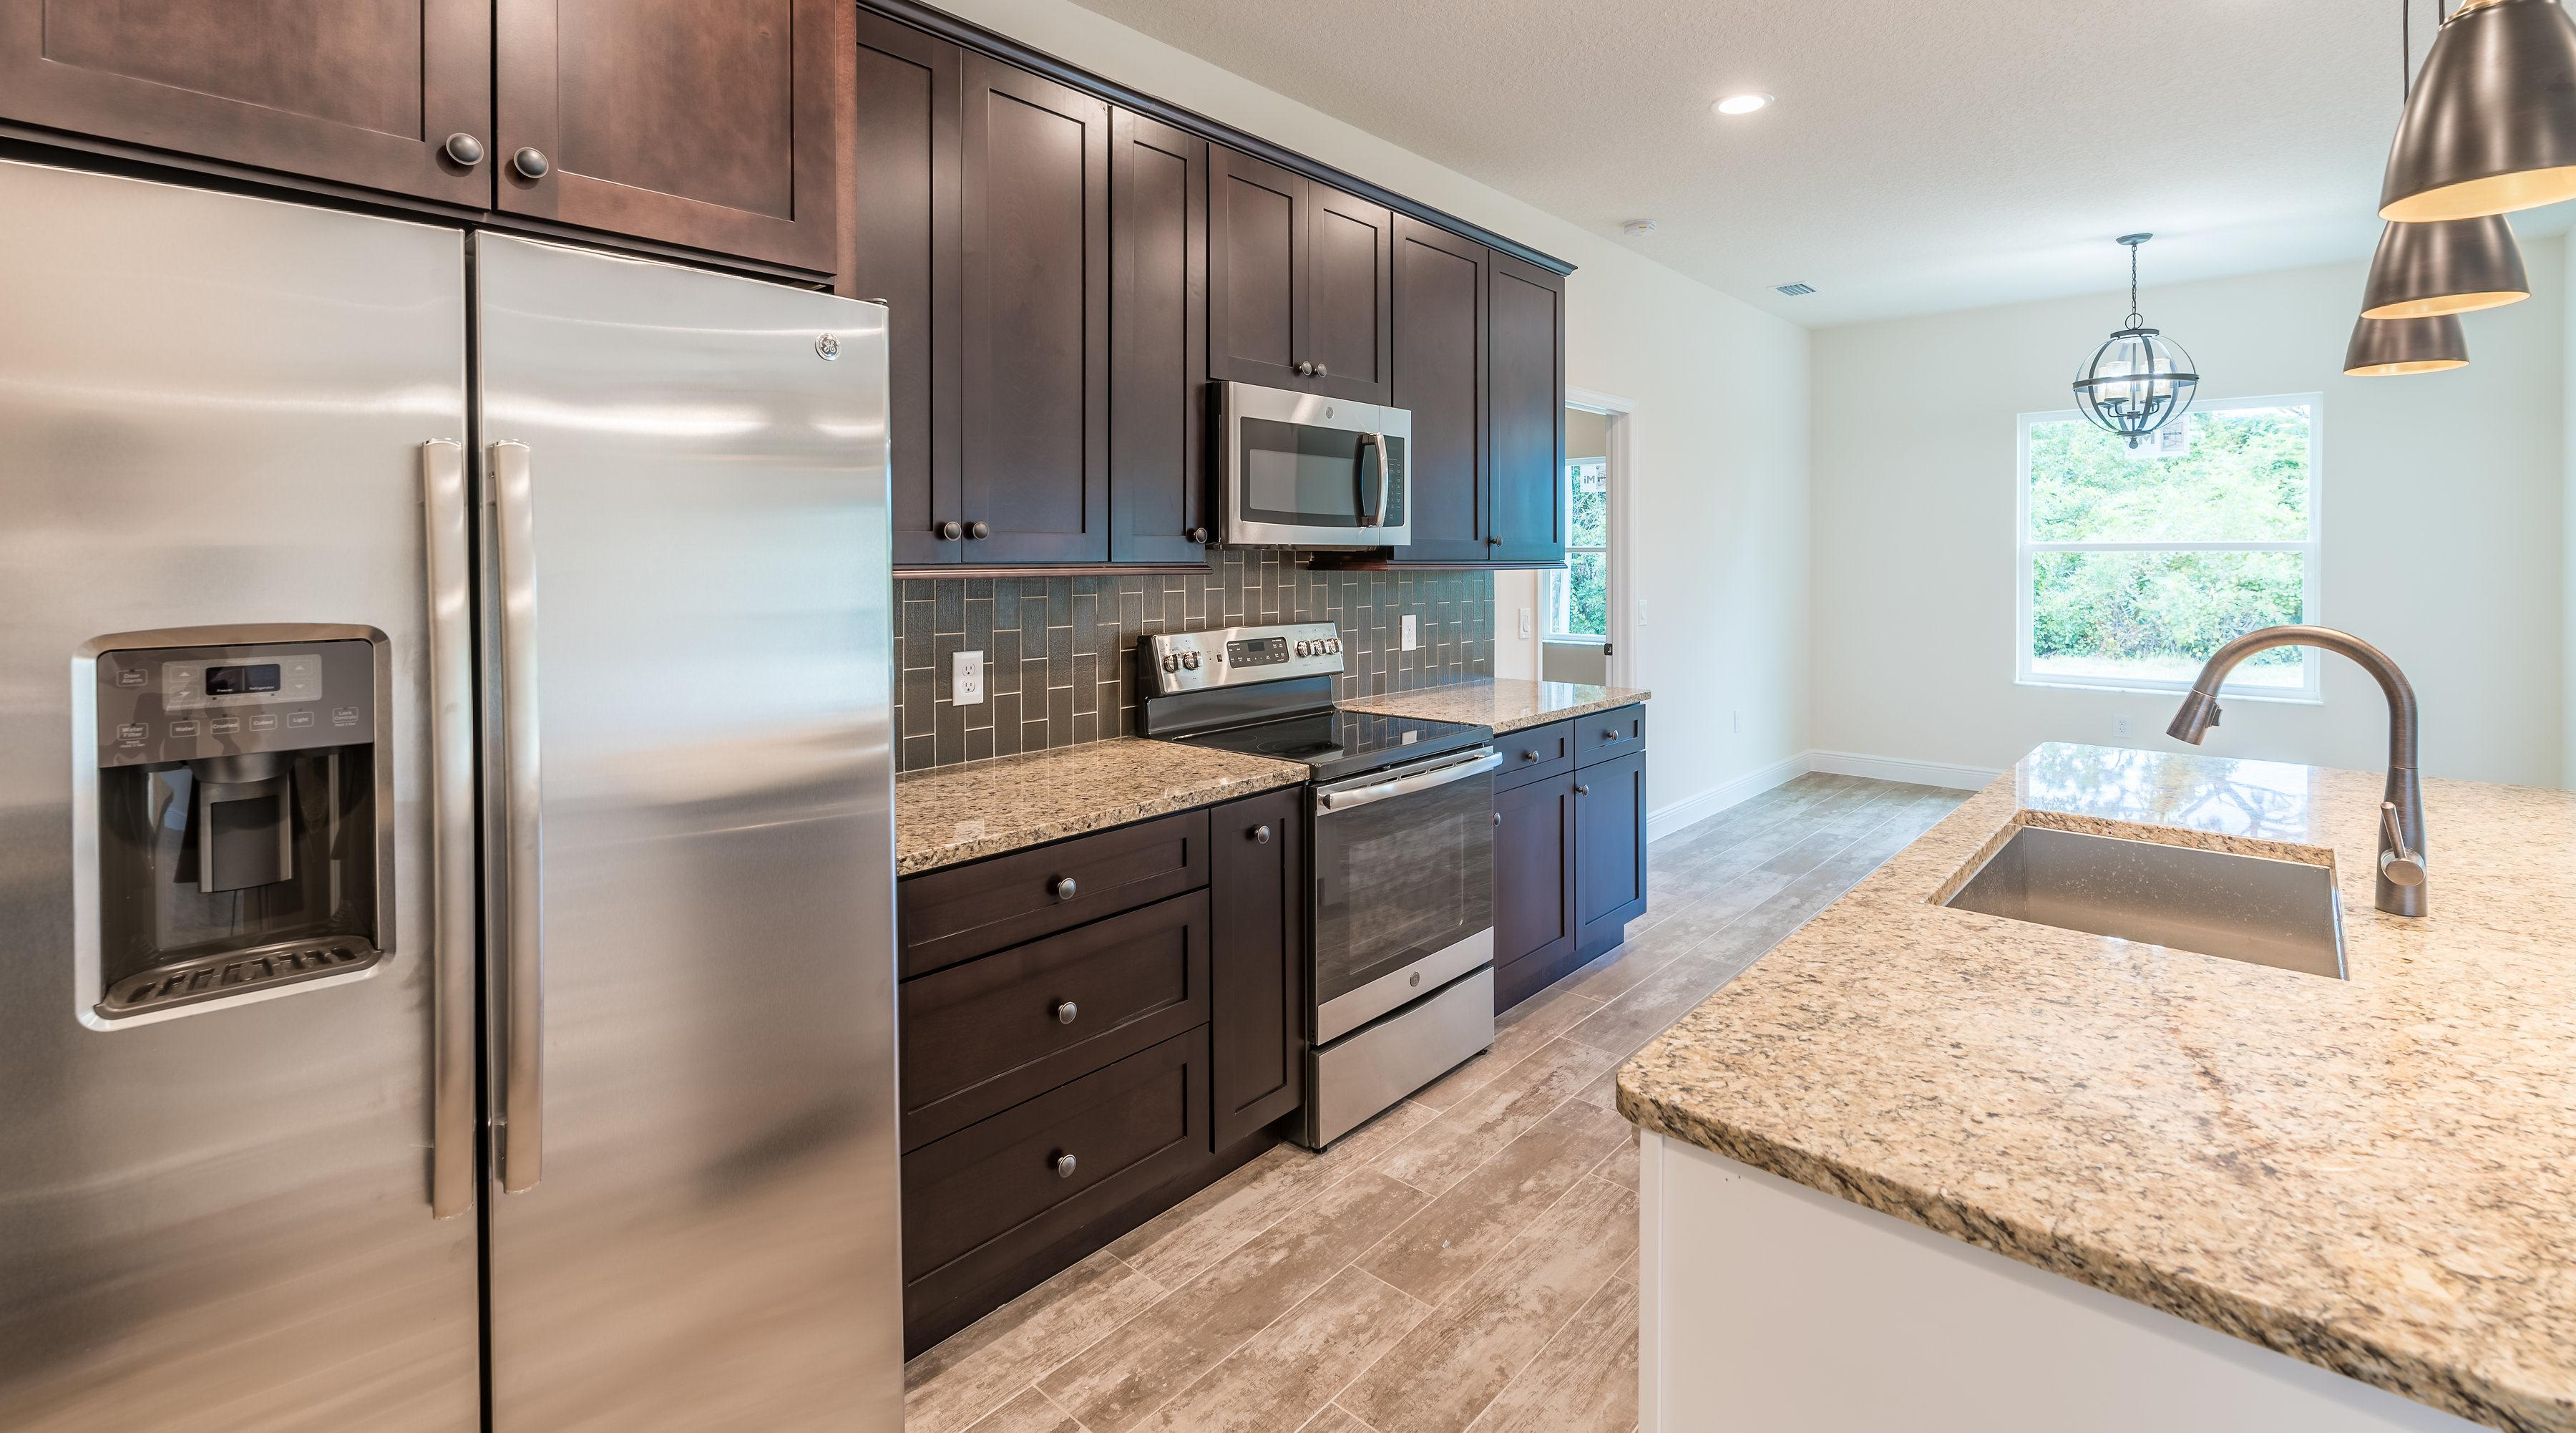 Kitchen featured in the Villa Foscari By Palladio Homes in Fort Myers, FL